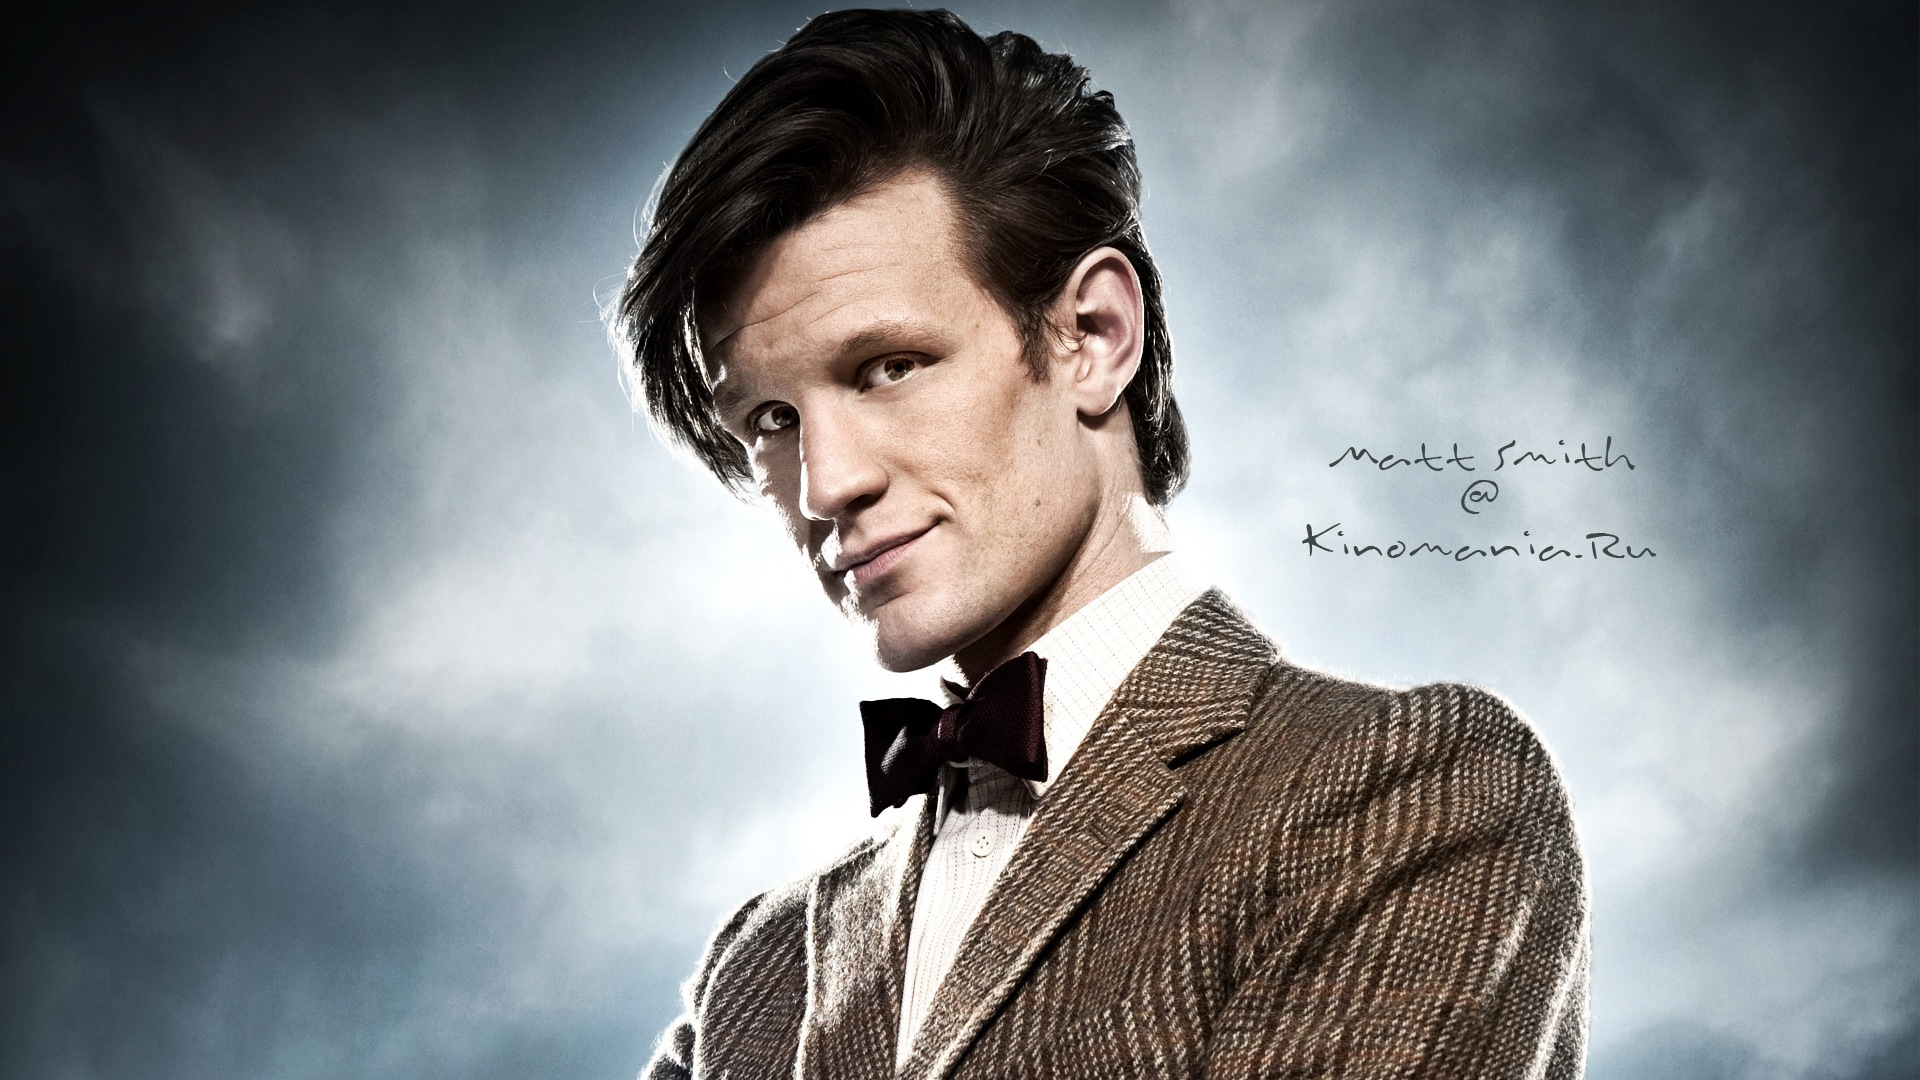 Matt Smith HD Wallpapers for desktop download 1920x1080